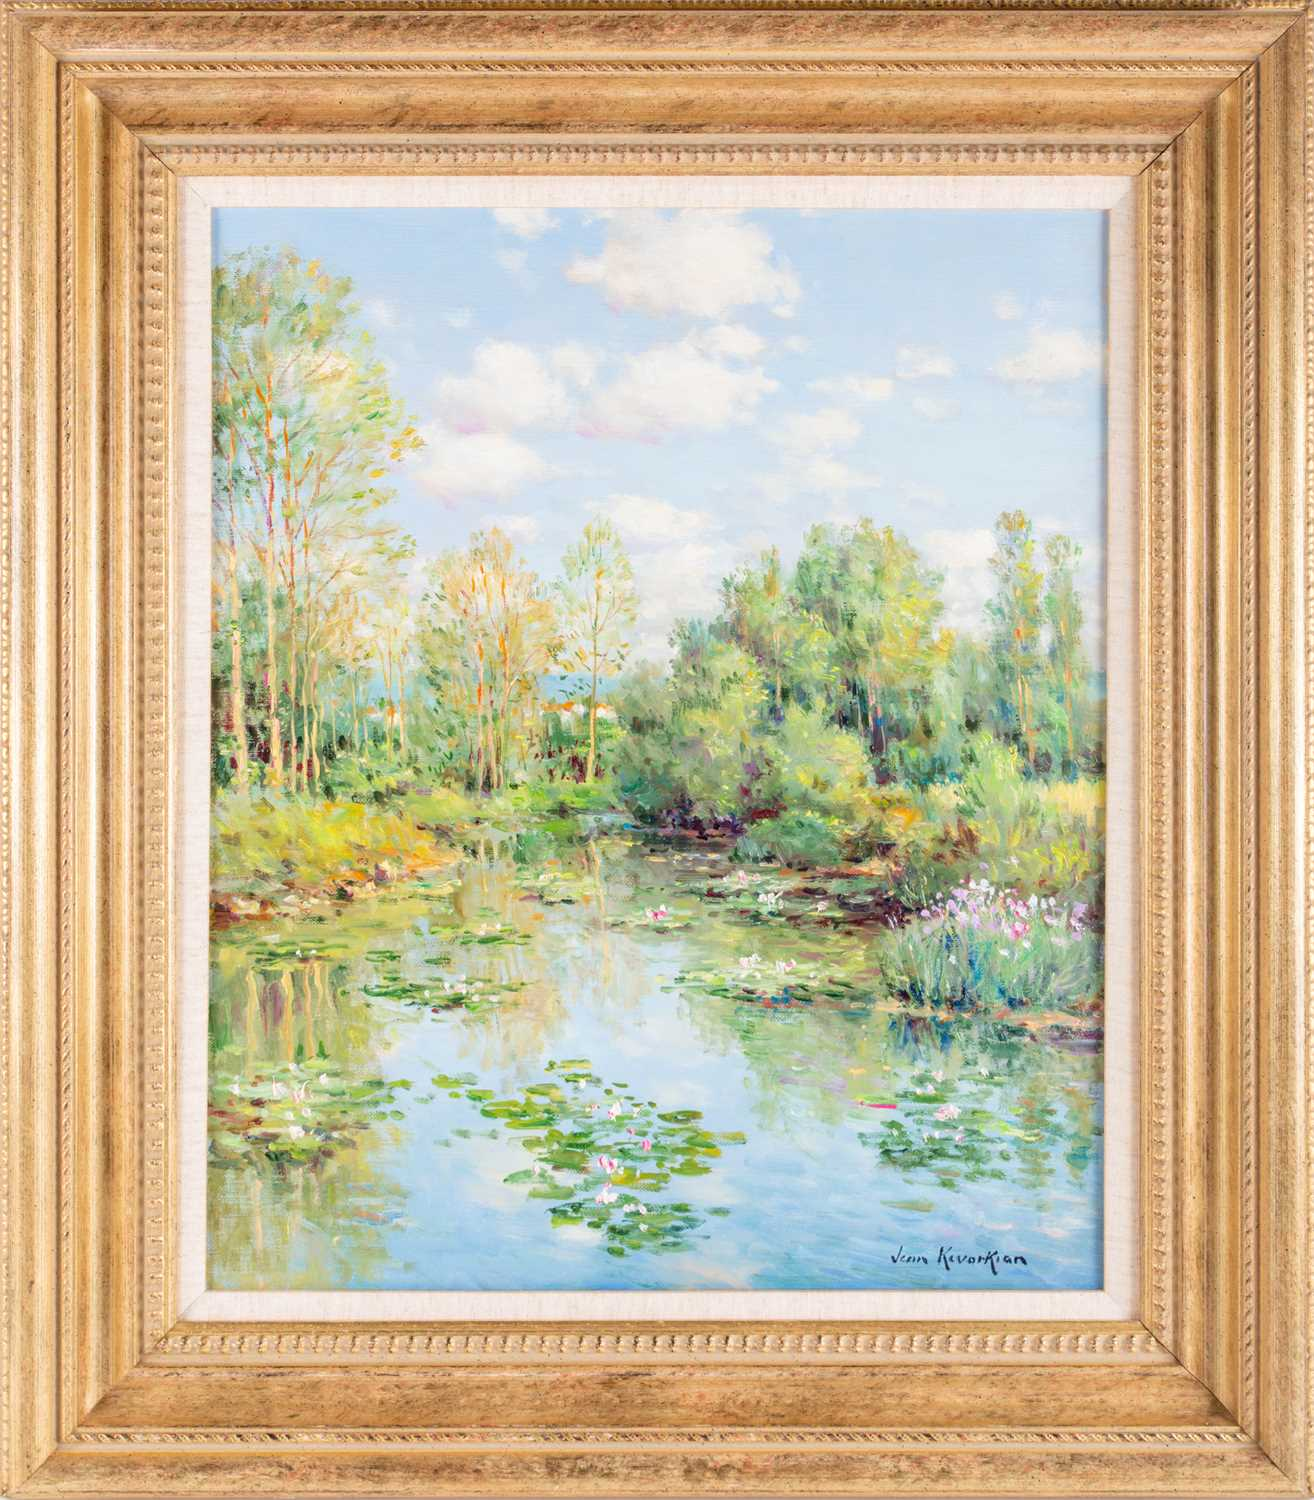 Jean Kevorkian French Nympheas impressionist pond summer oil on canvas